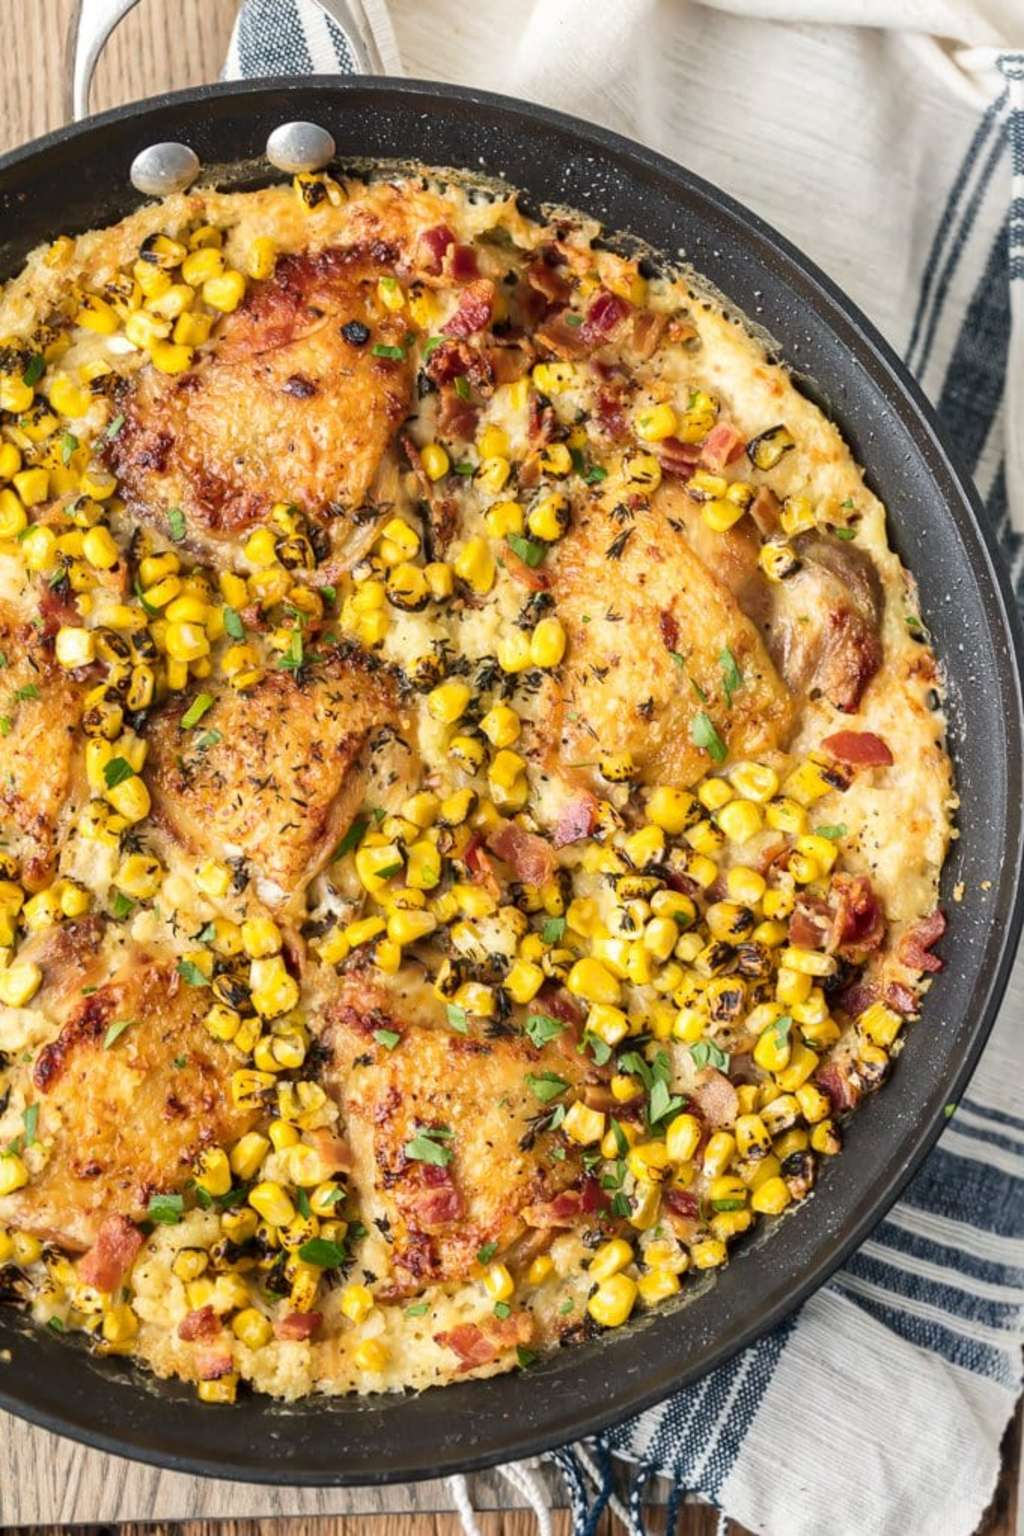 Make This Creamy Chicken & Couscous Skillet Meal ASAP